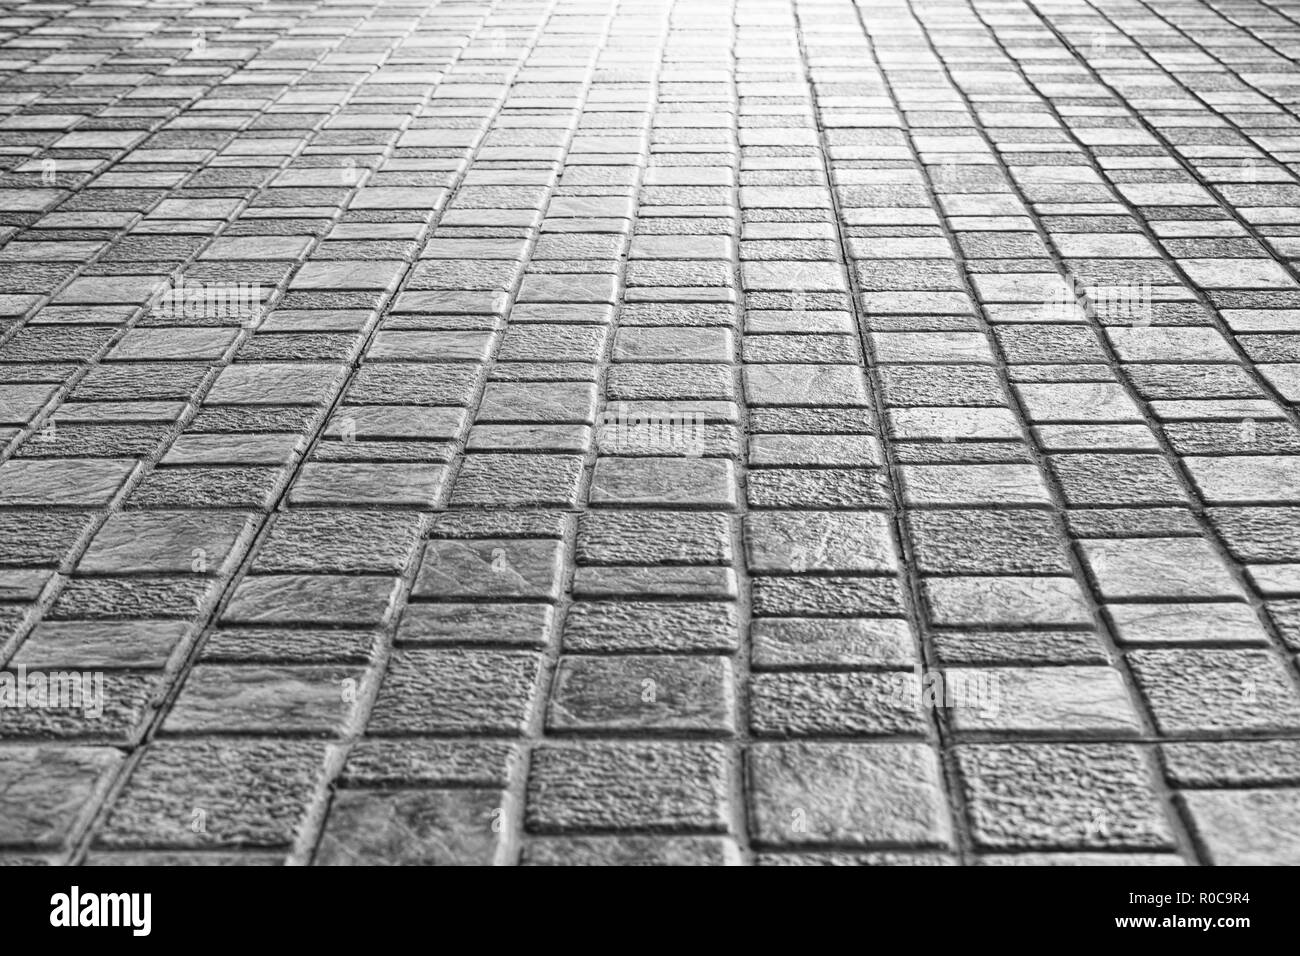 Concrete pavement tile immagini & concrete pavement tile fotos stock